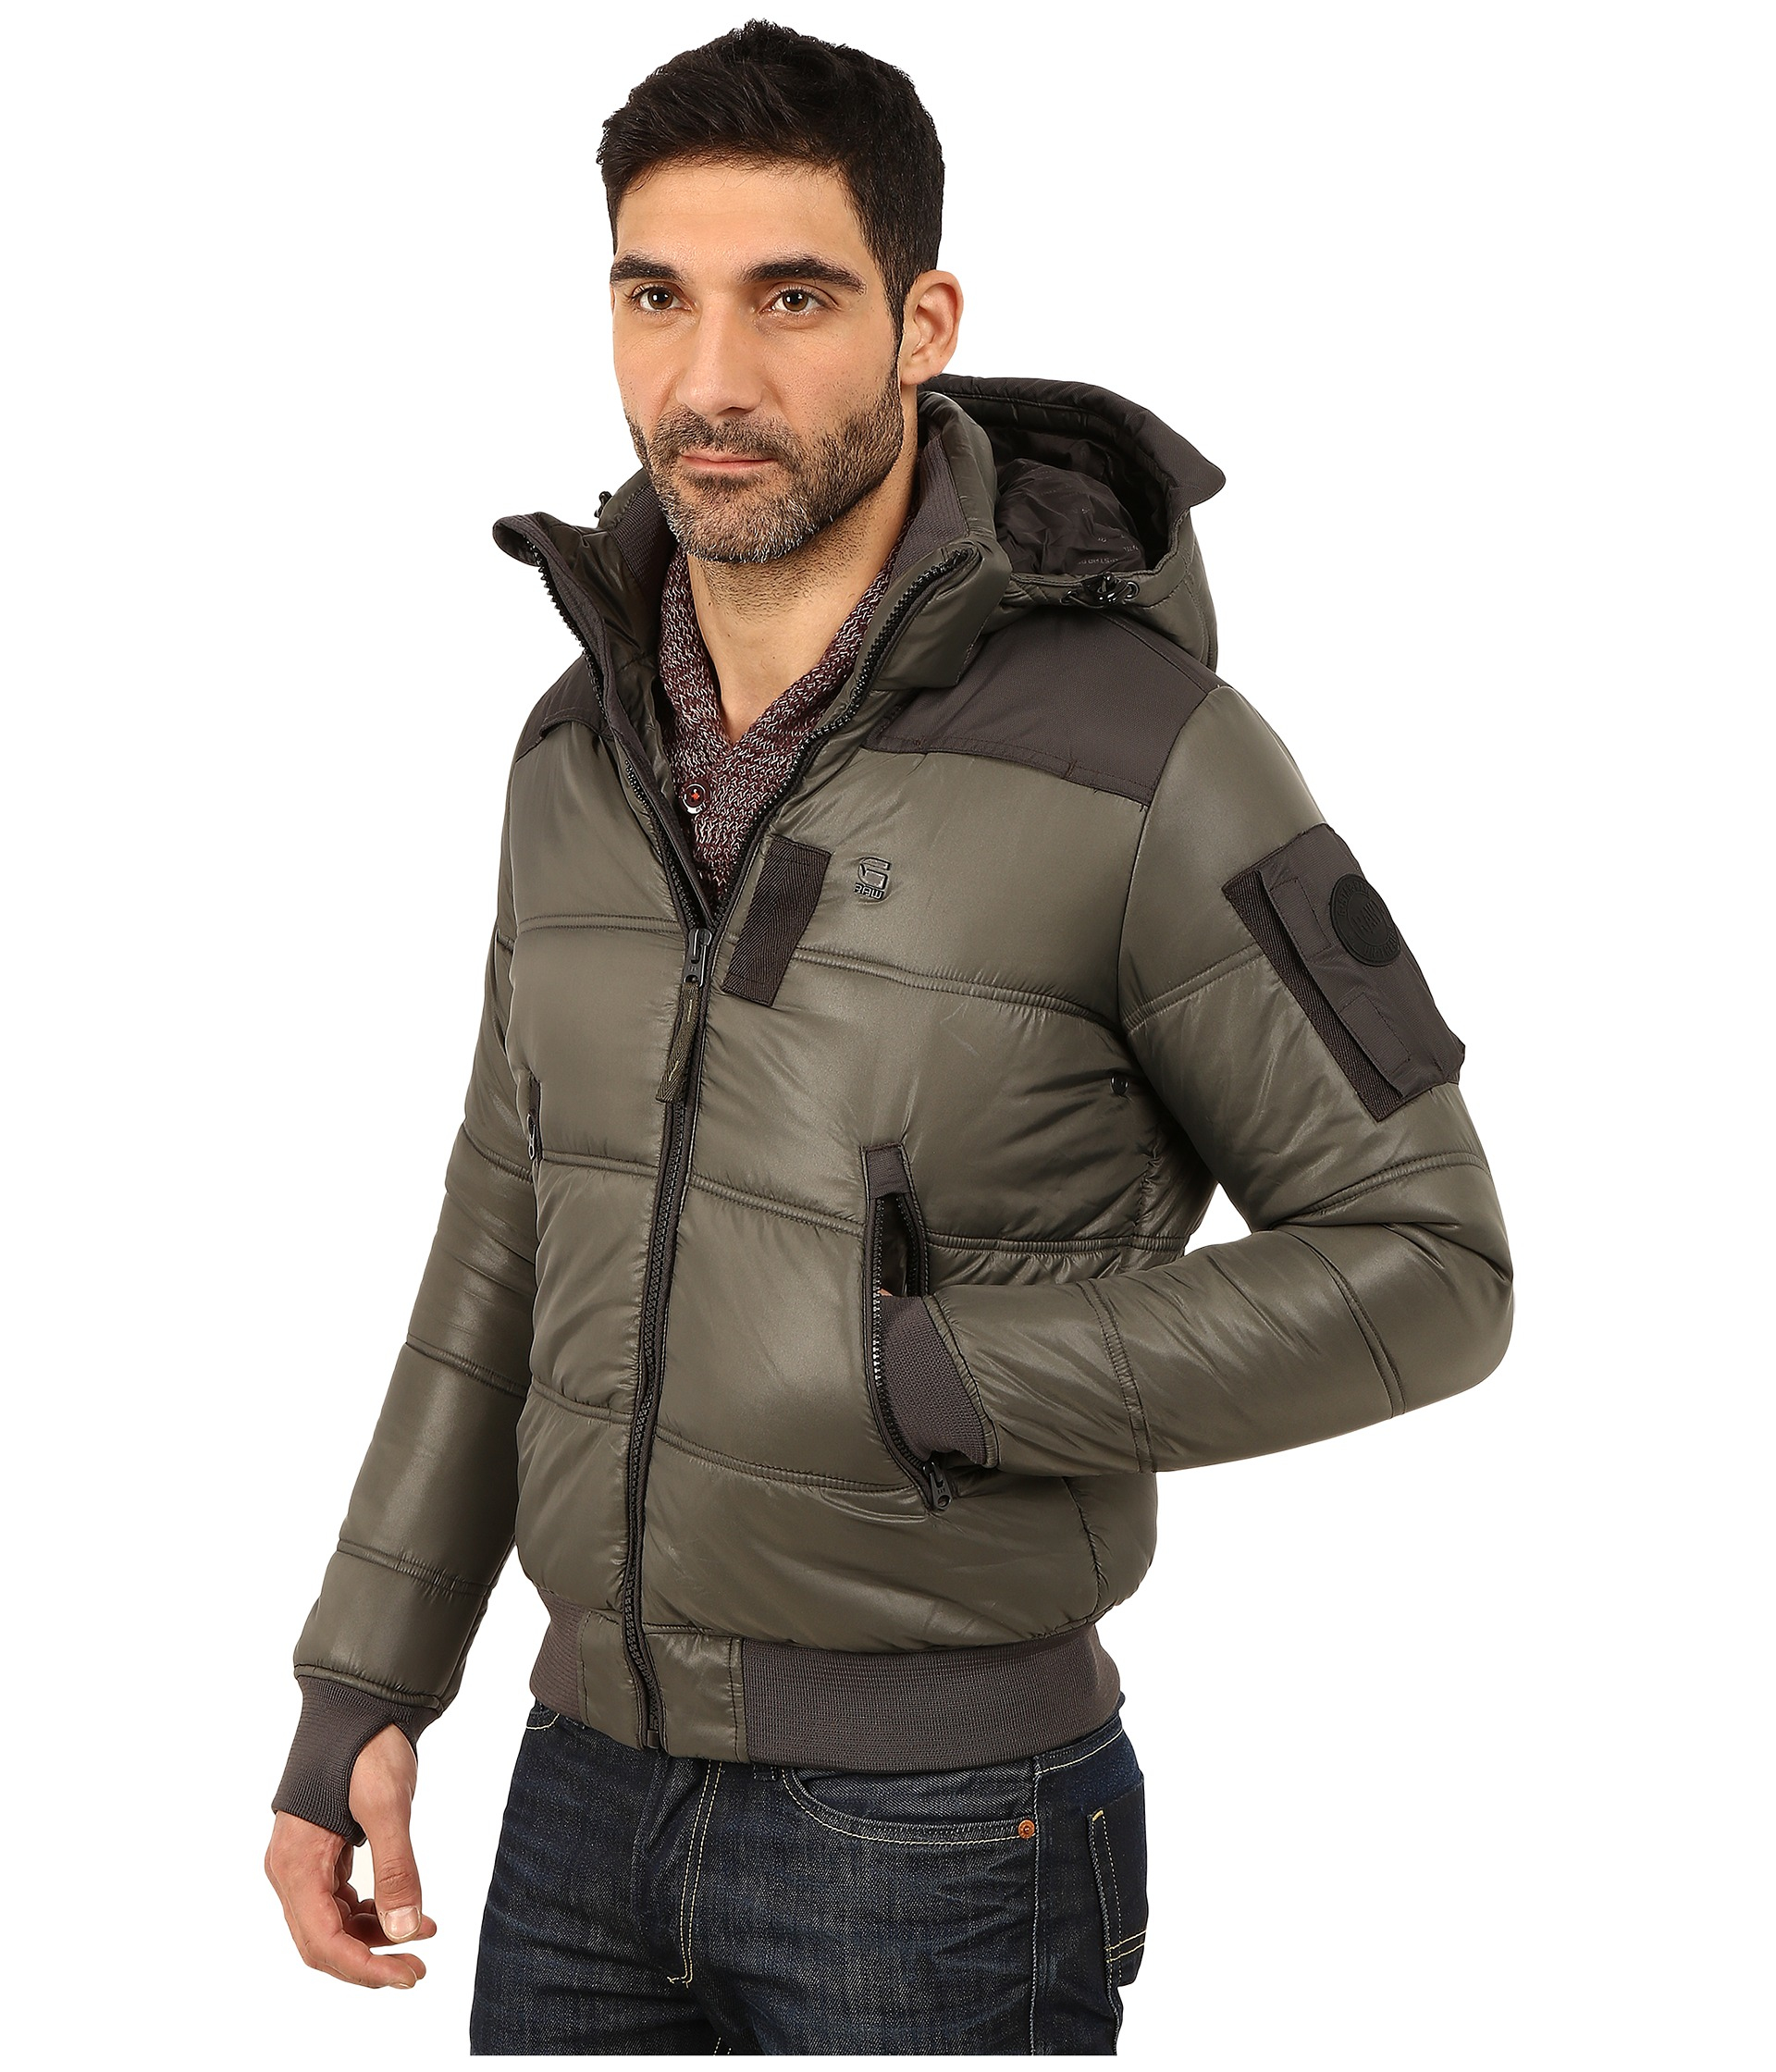 g star raw whistler hooded bomber jacket in gray for men lyst. Black Bedroom Furniture Sets. Home Design Ideas